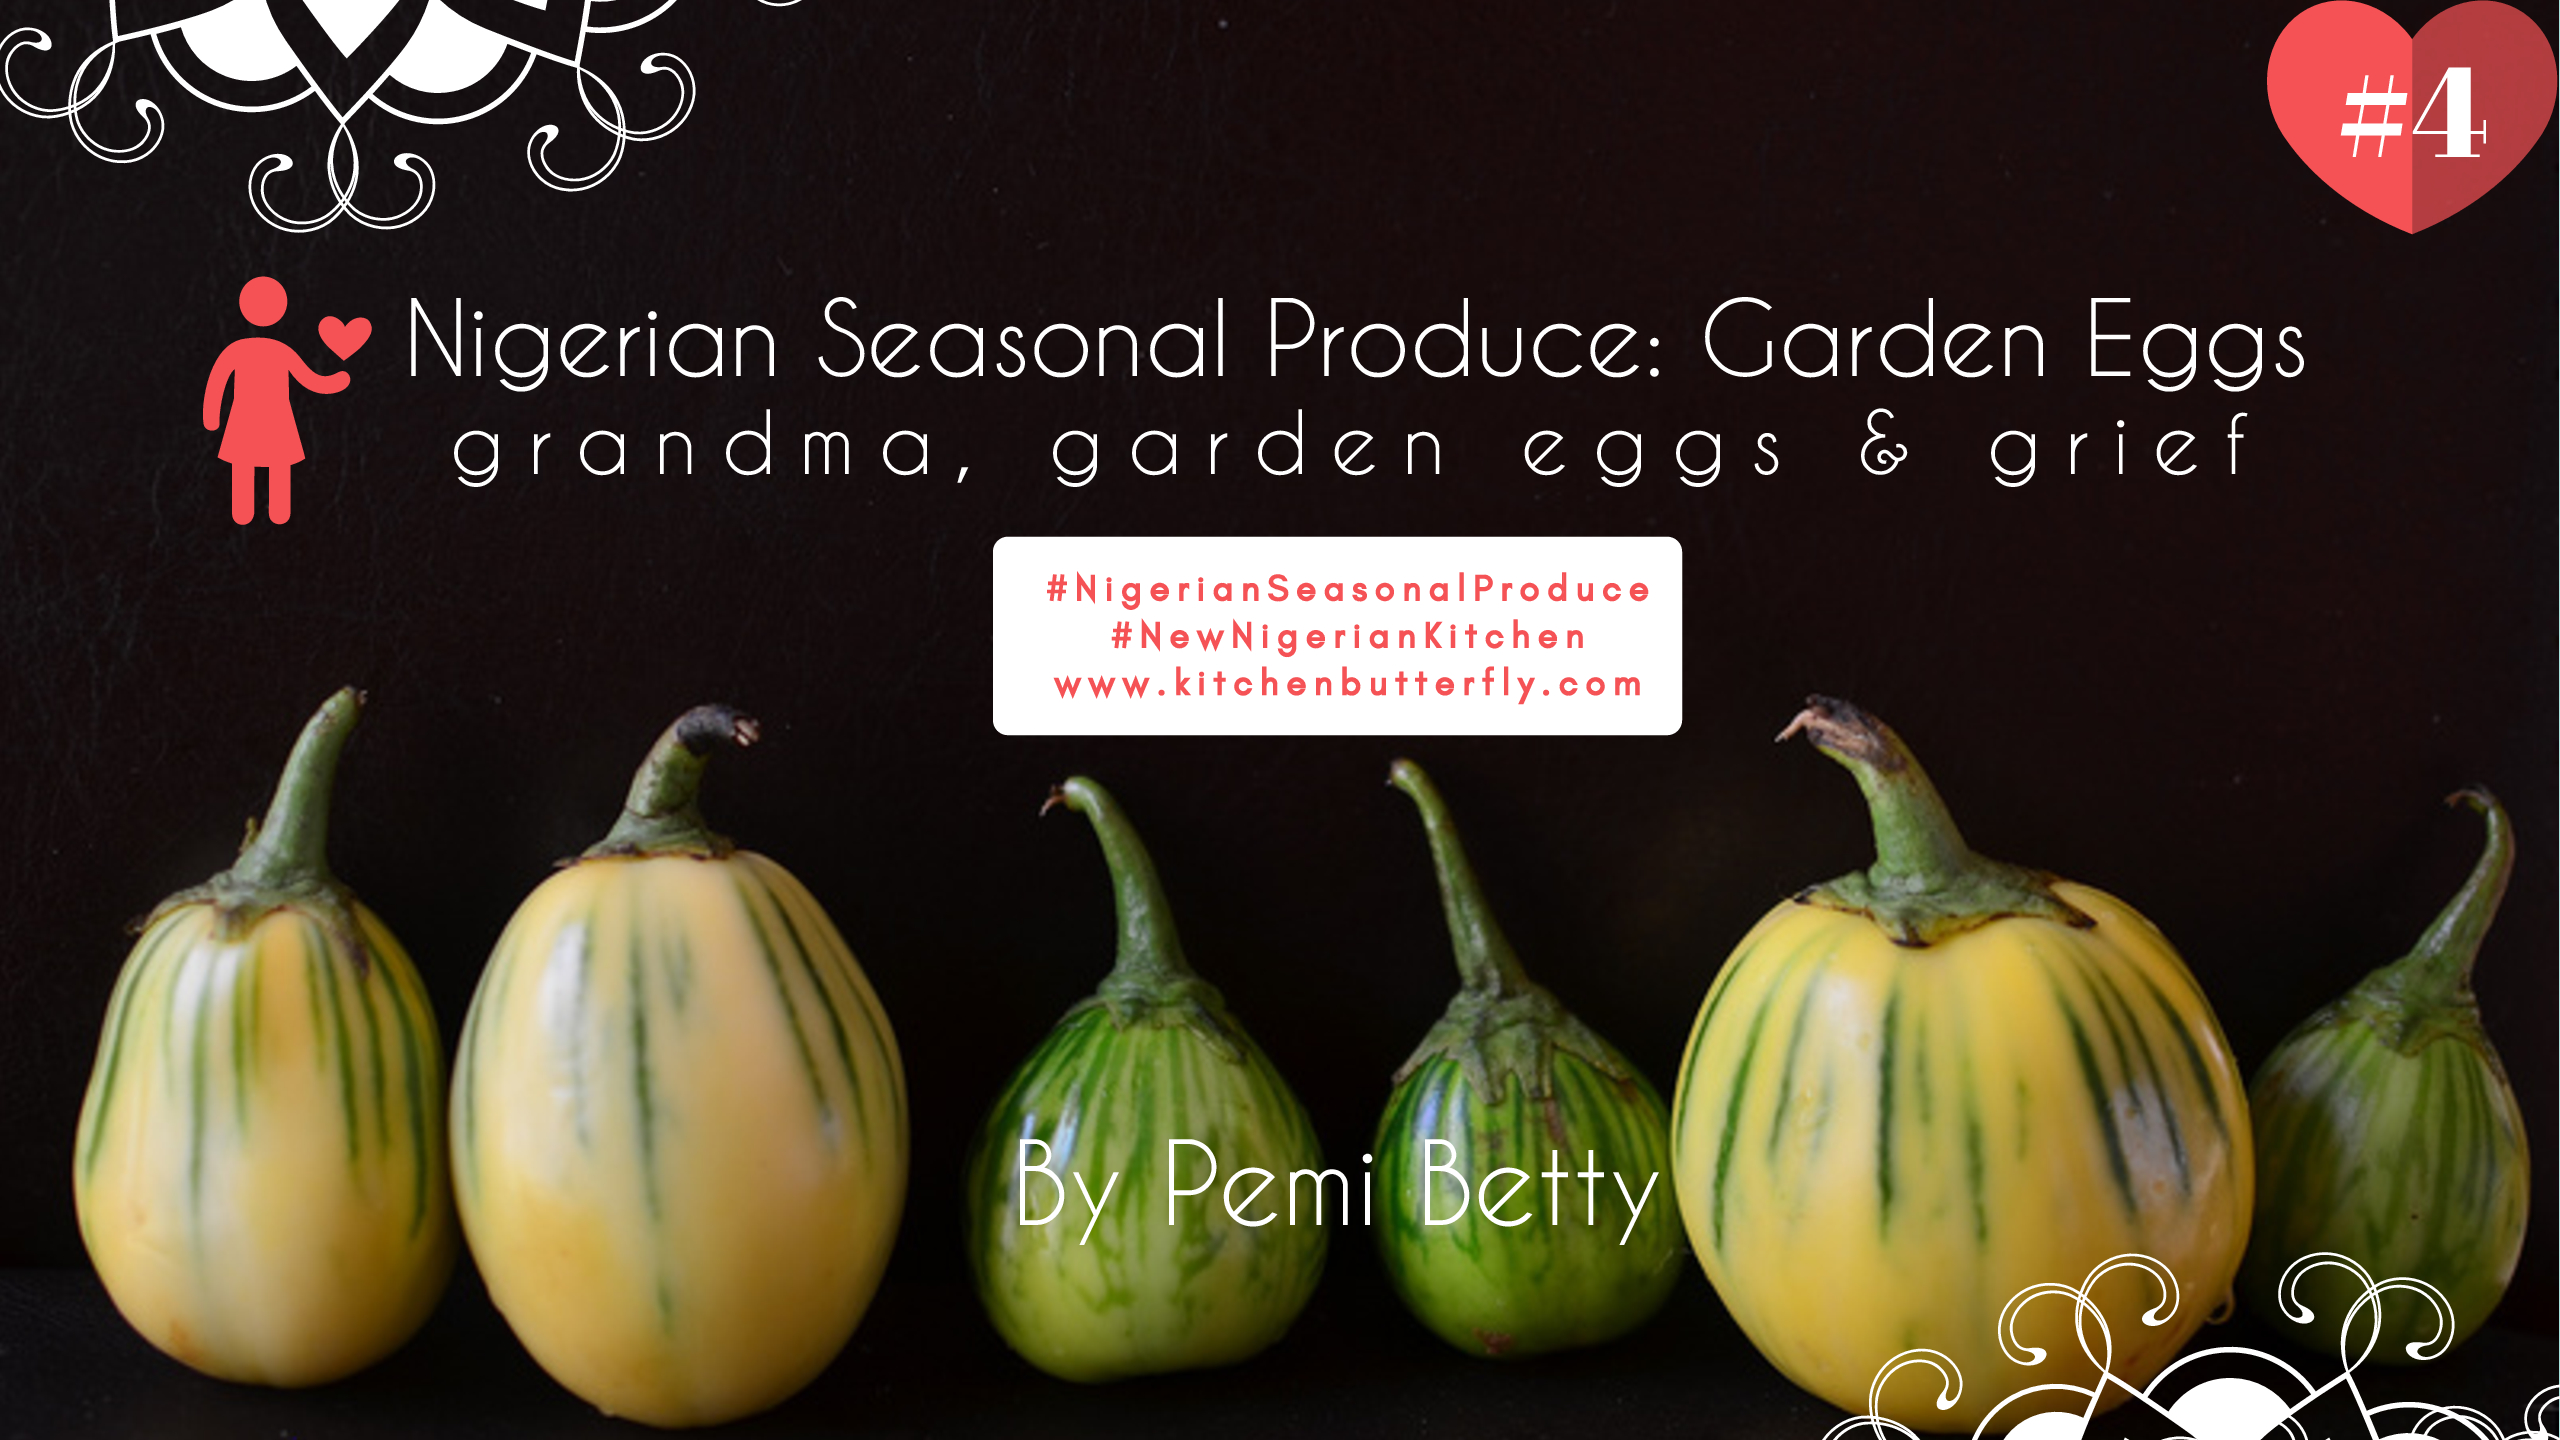 Nigerian Seasonal Produce Garden Eggs 4 Kitchen Butterfly